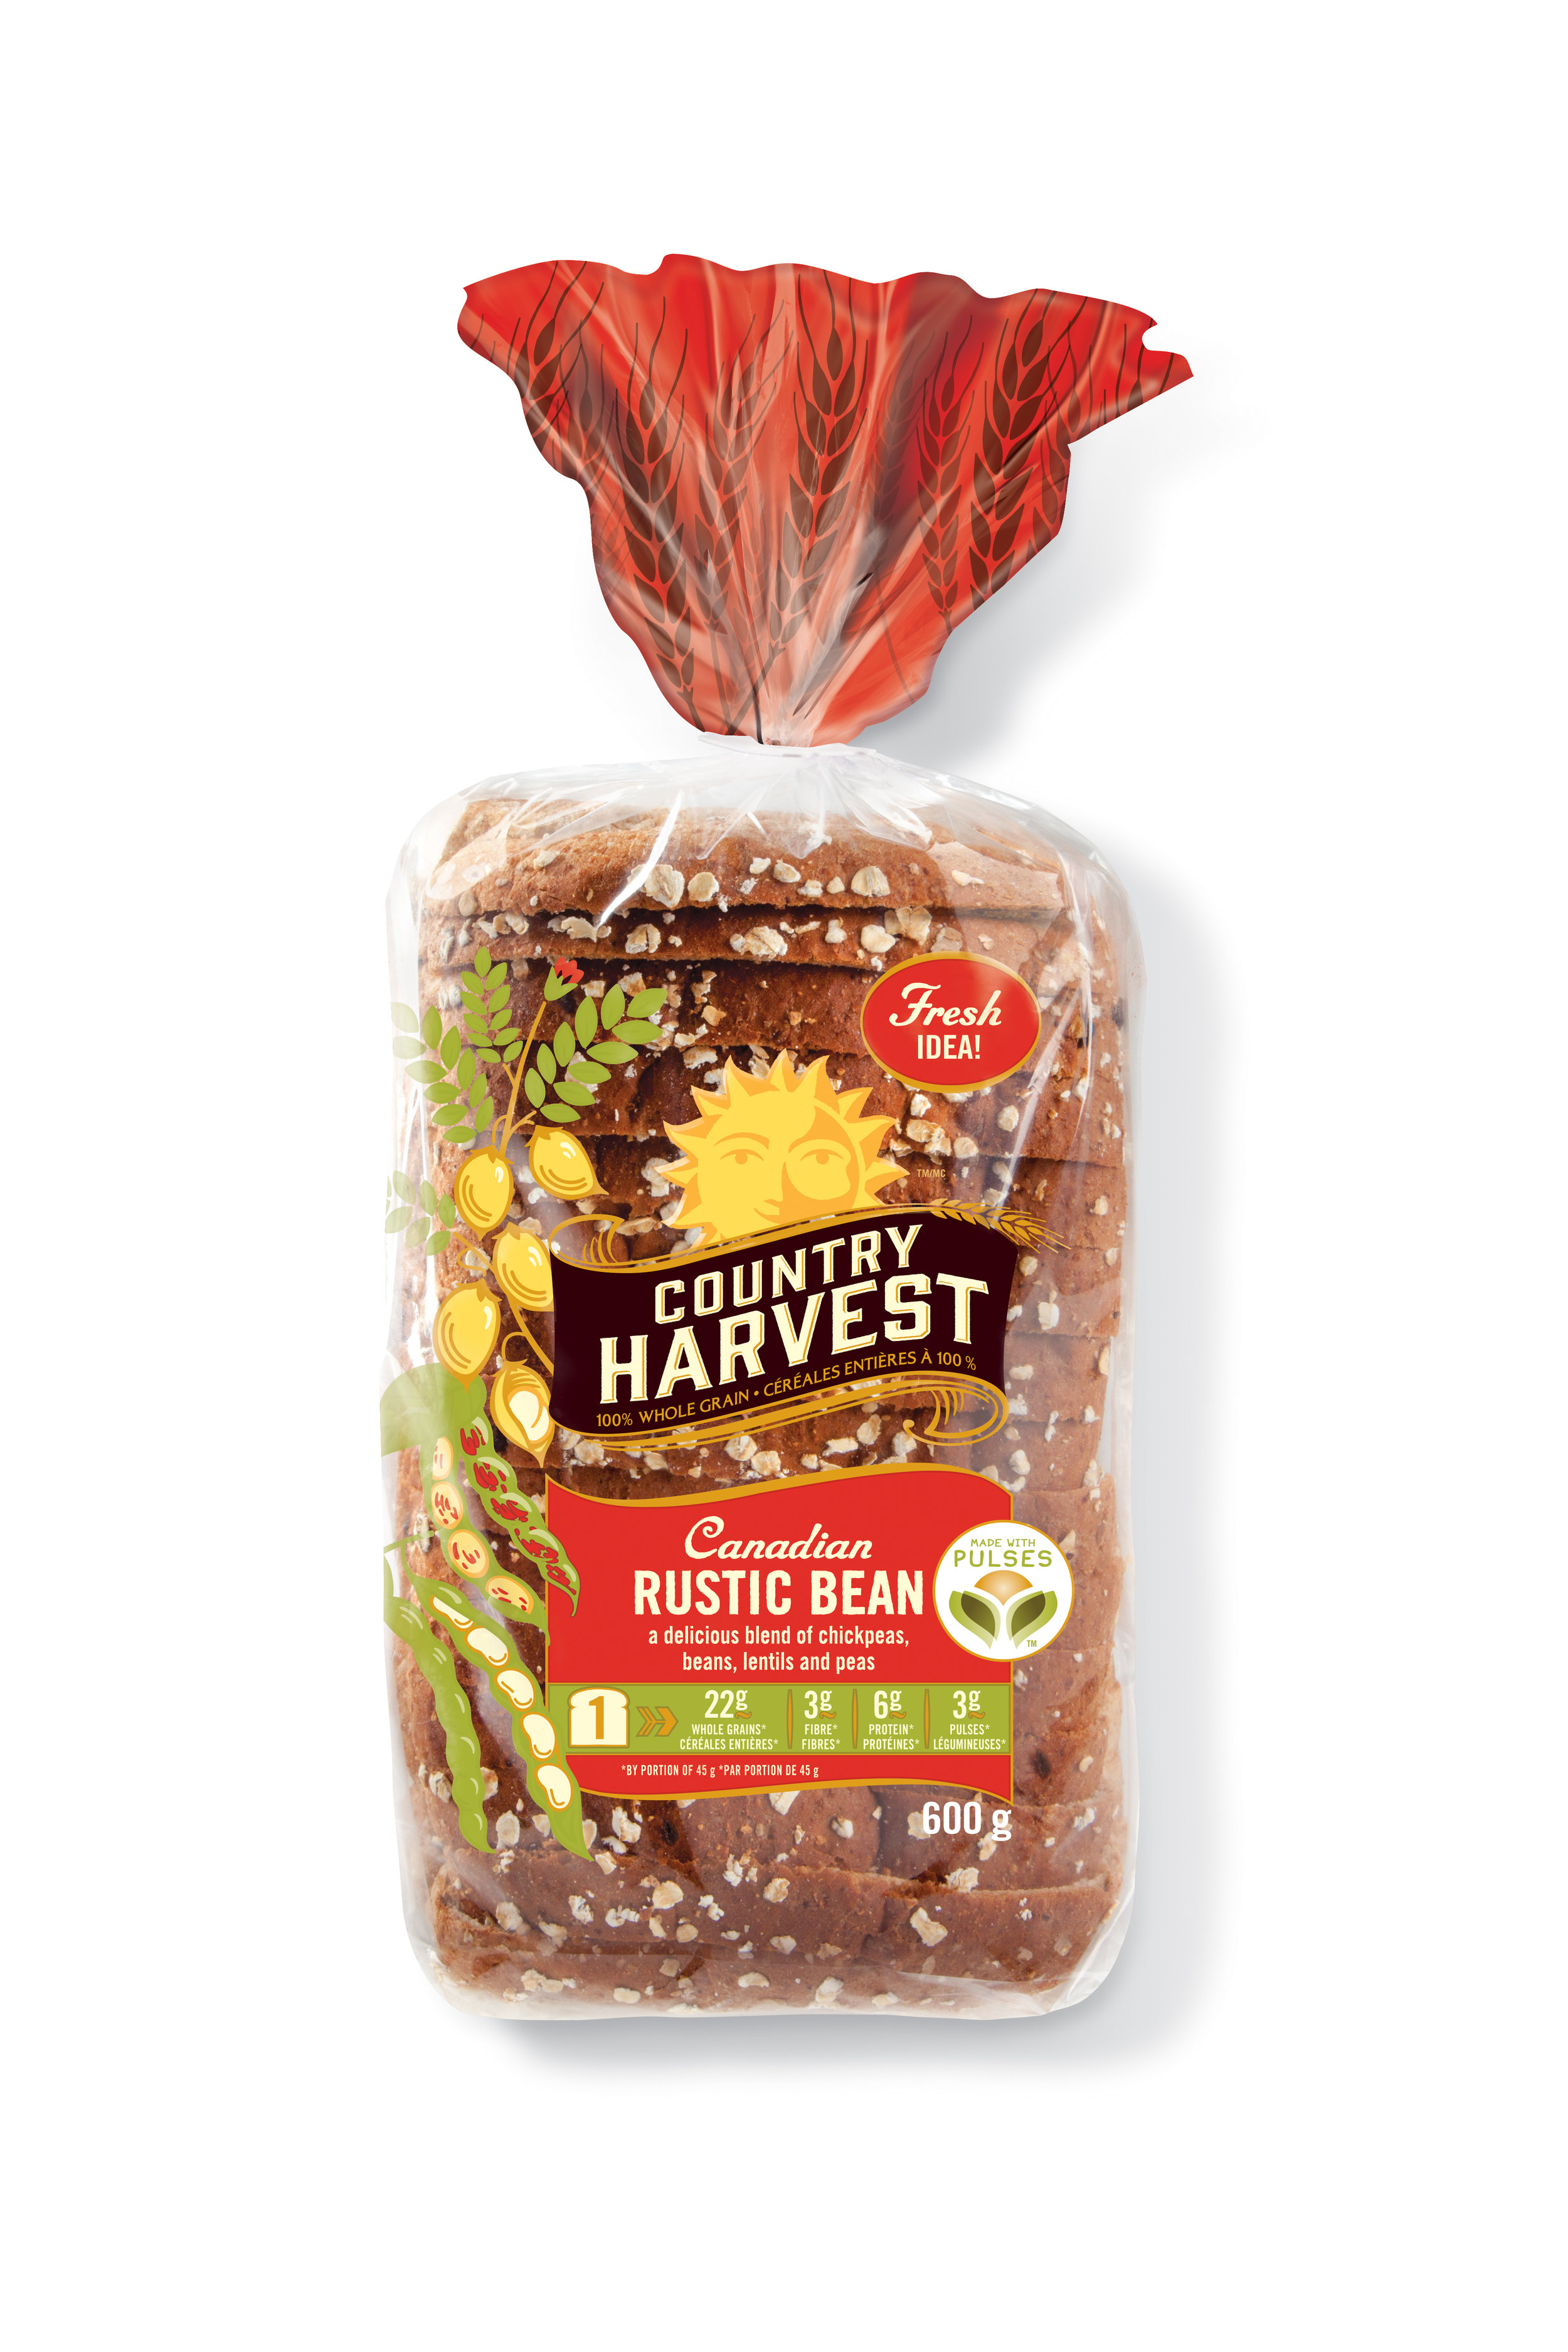 Country Harvest Canadian Rustic Bean